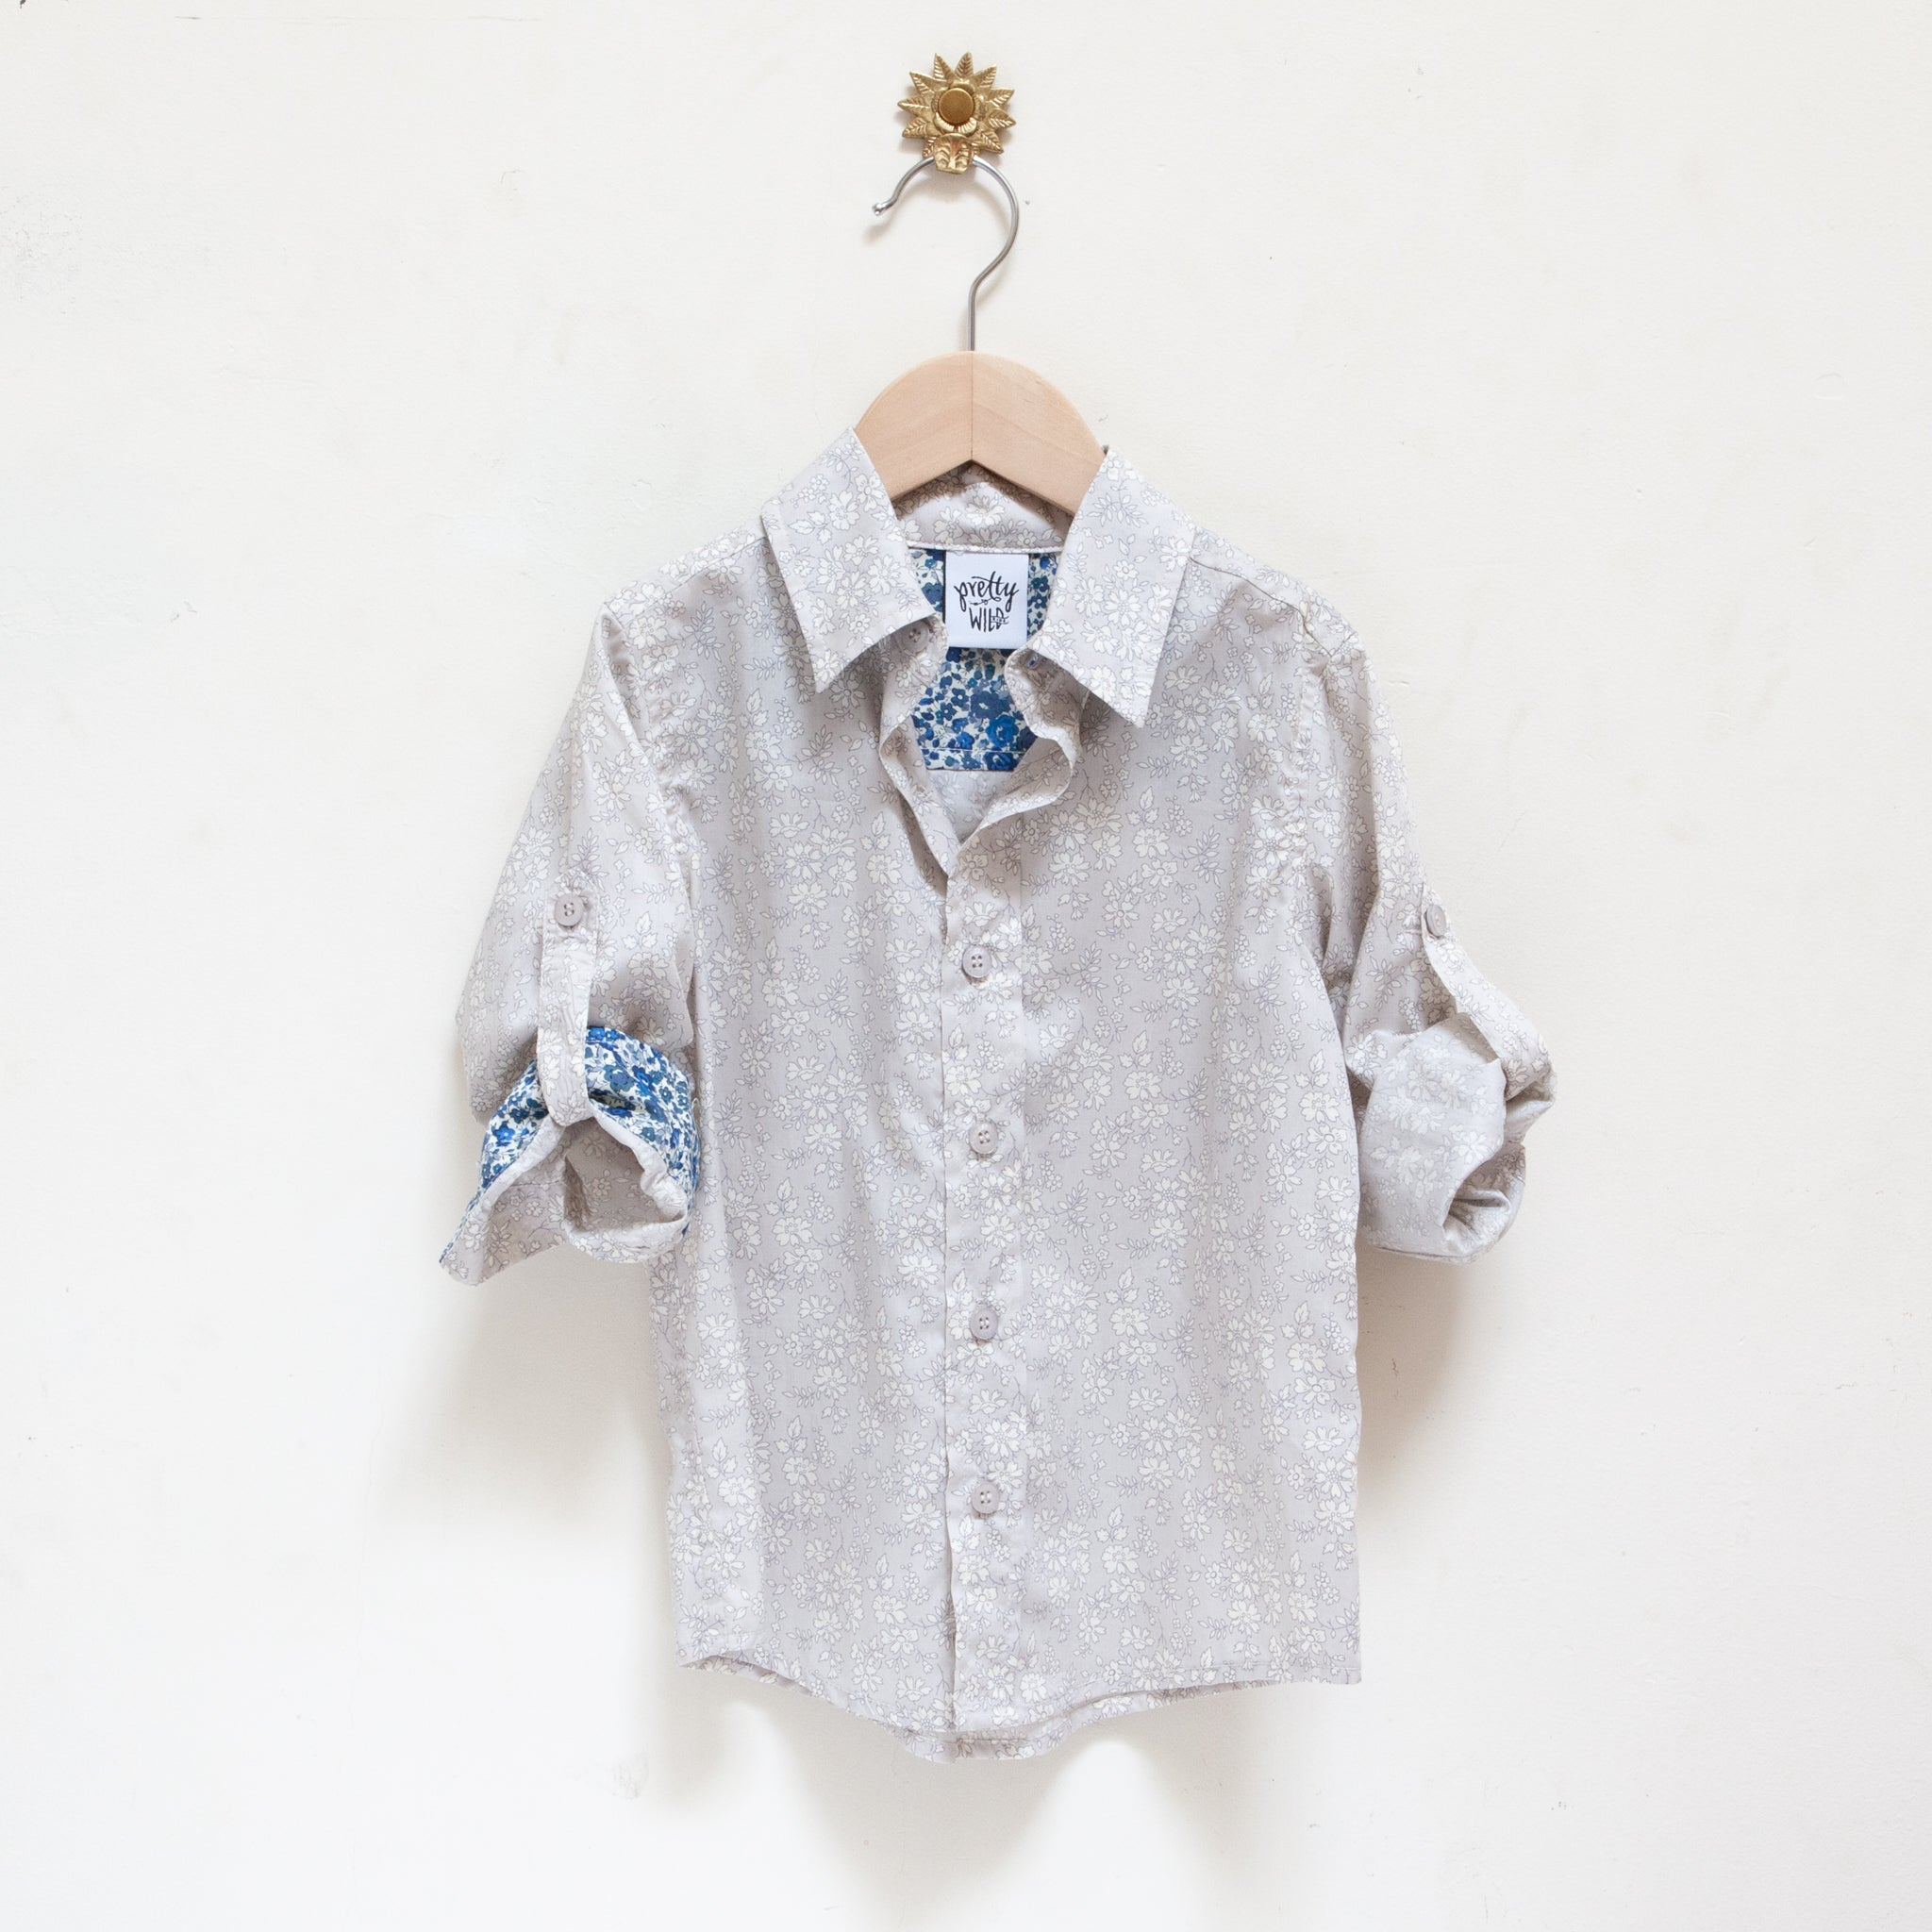 Christian Shirt Silver Belle